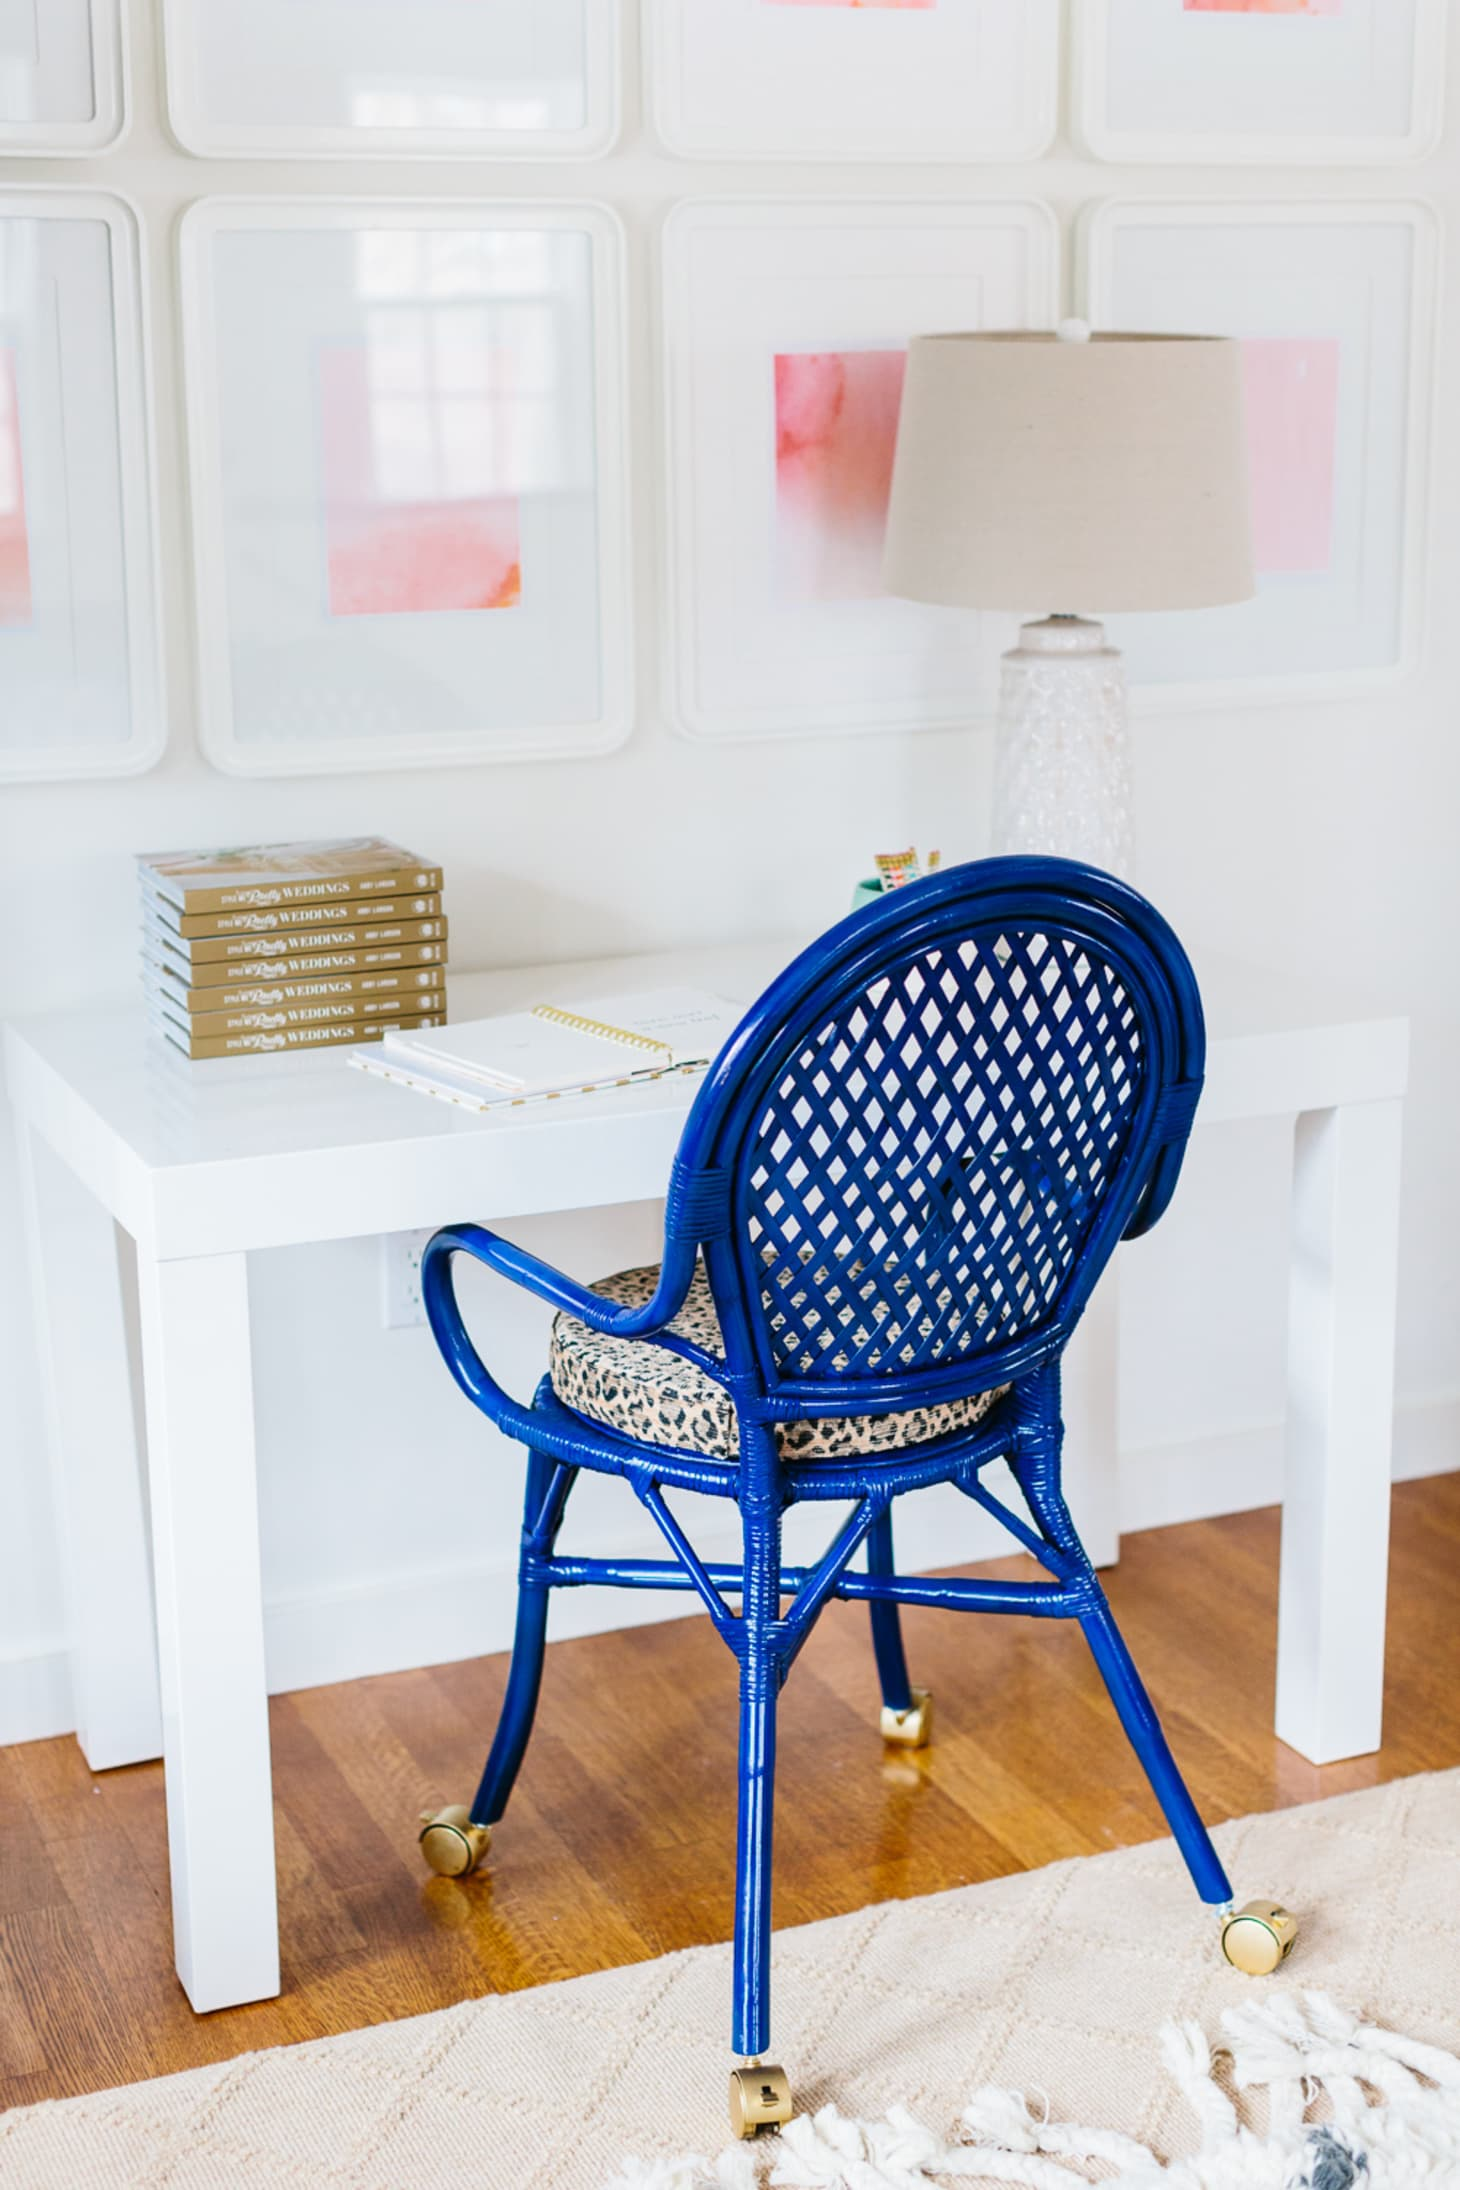 Pleasant Gronadal Rocking Chair Hack Ideas And Diy Projects Gmtry Best Dining Table And Chair Ideas Images Gmtryco